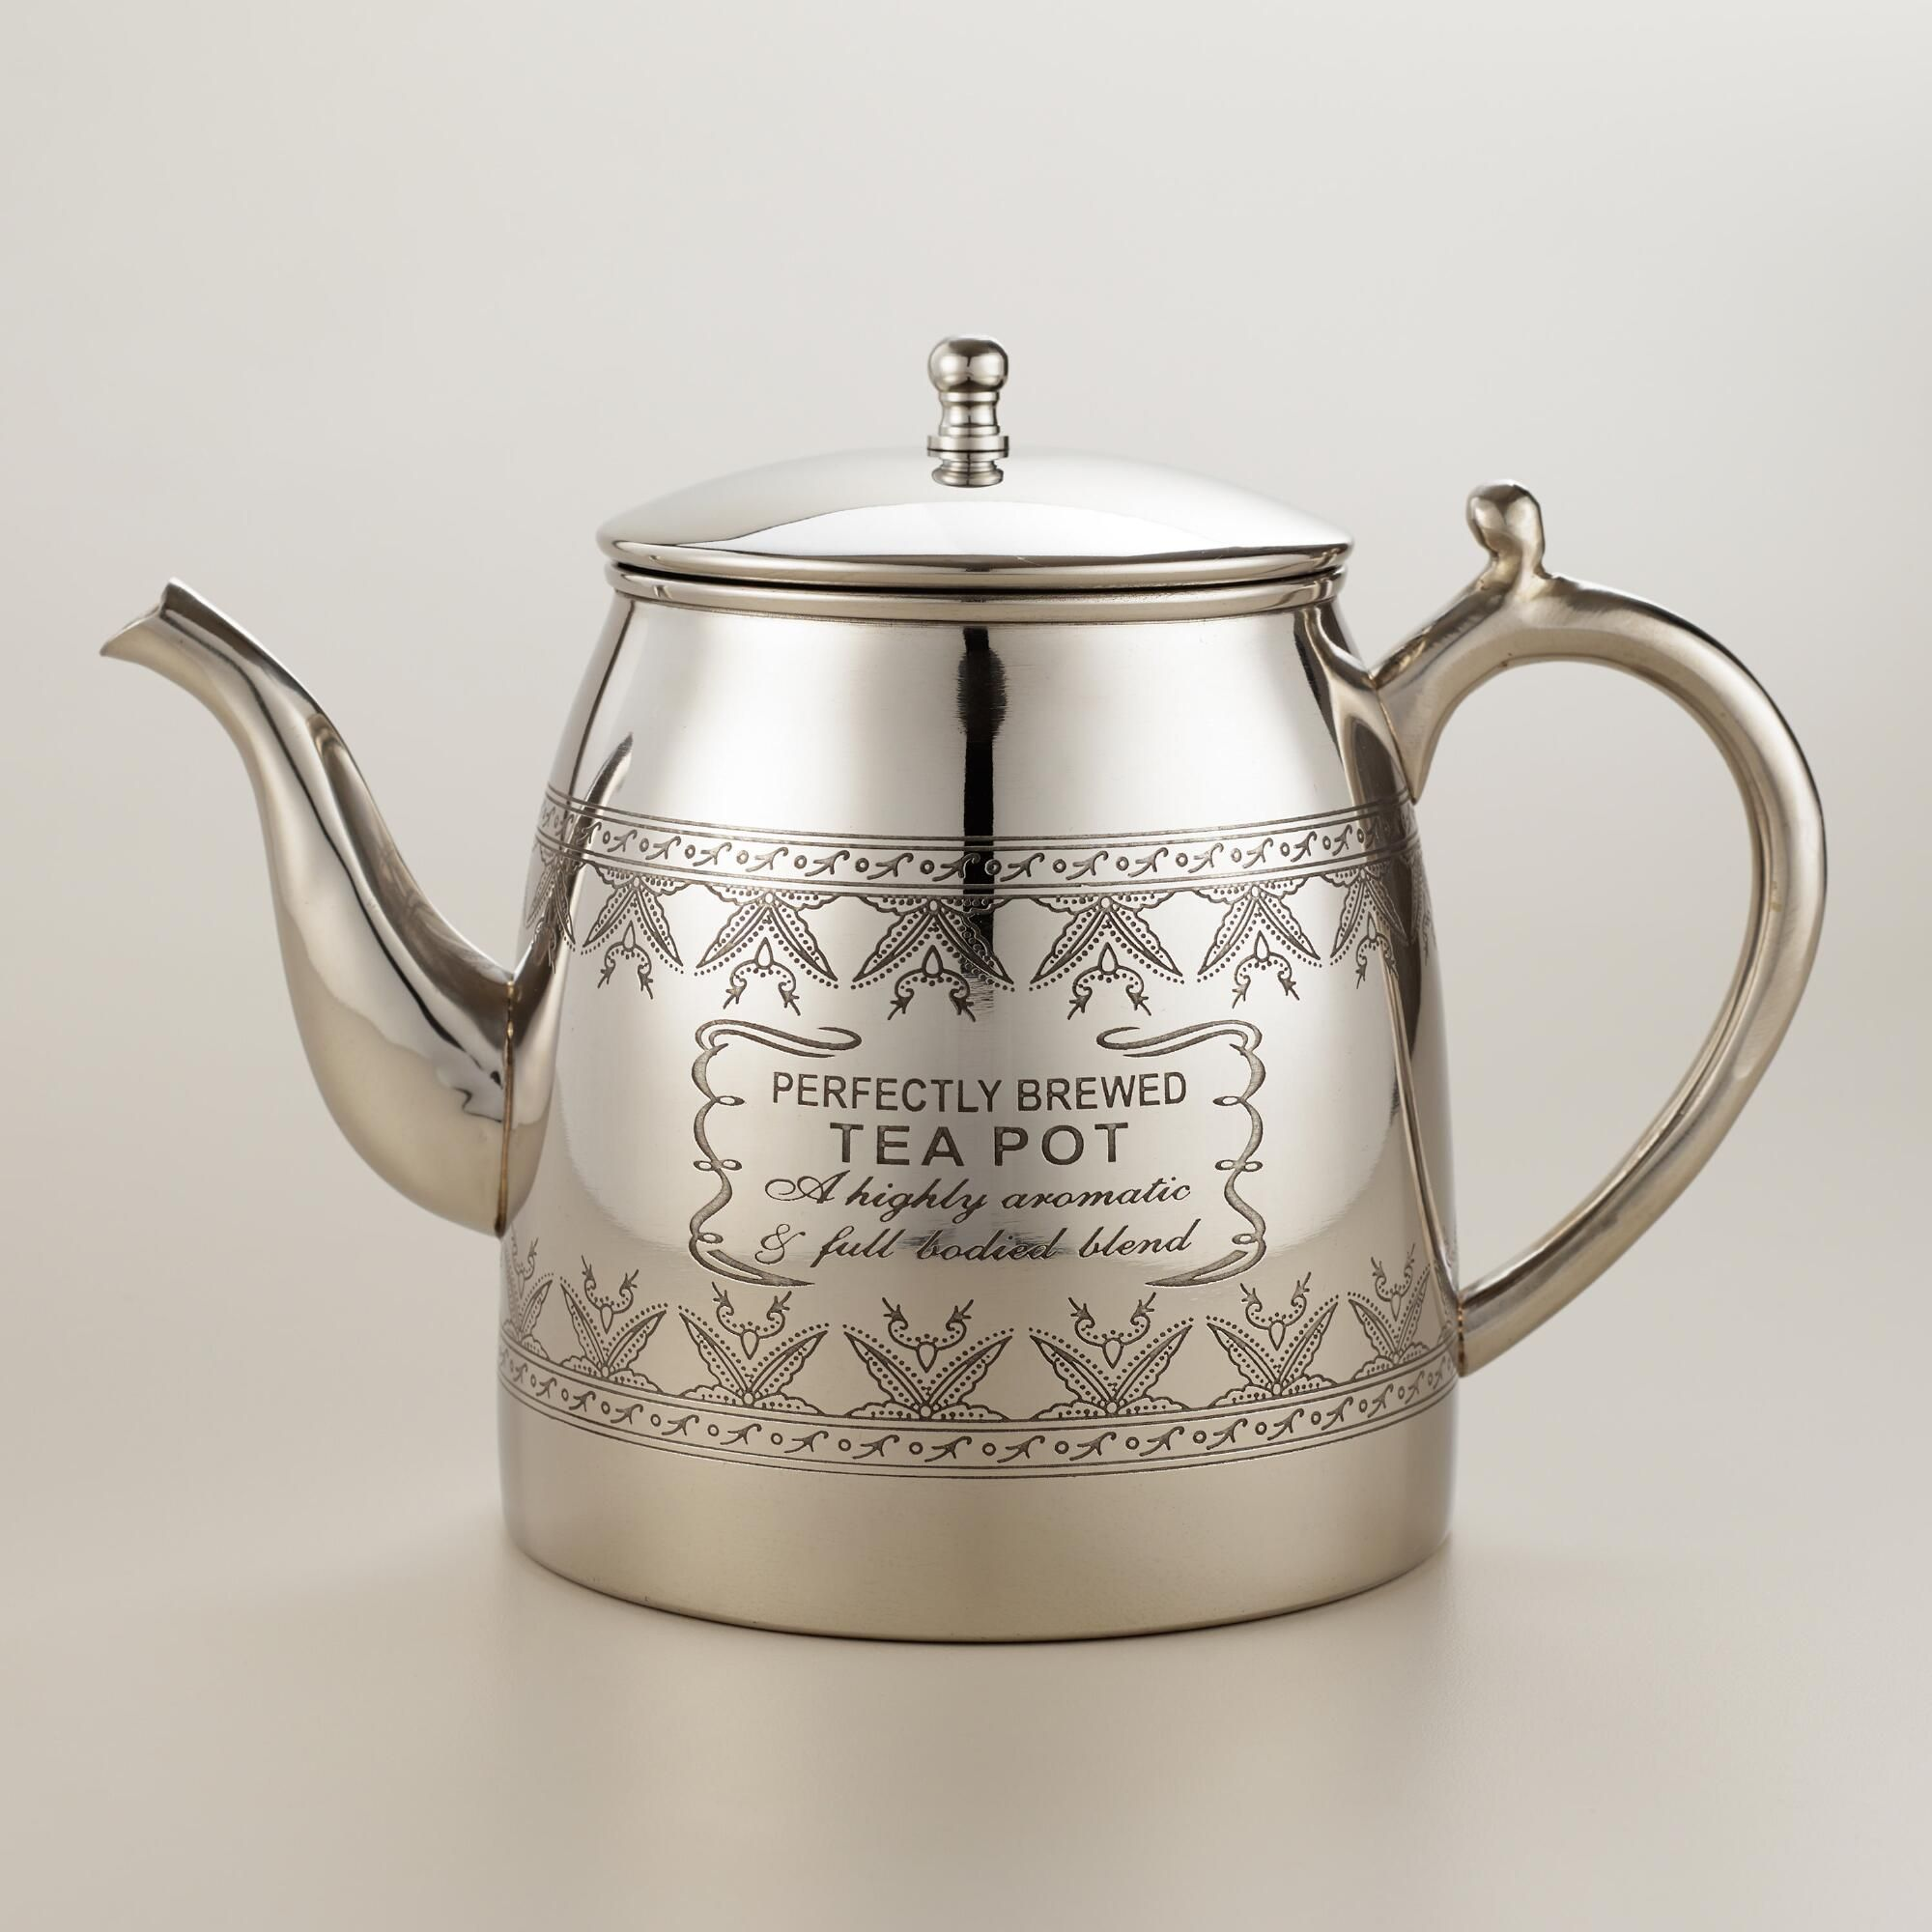 our burnished stainless steel teapot features a traditional curved